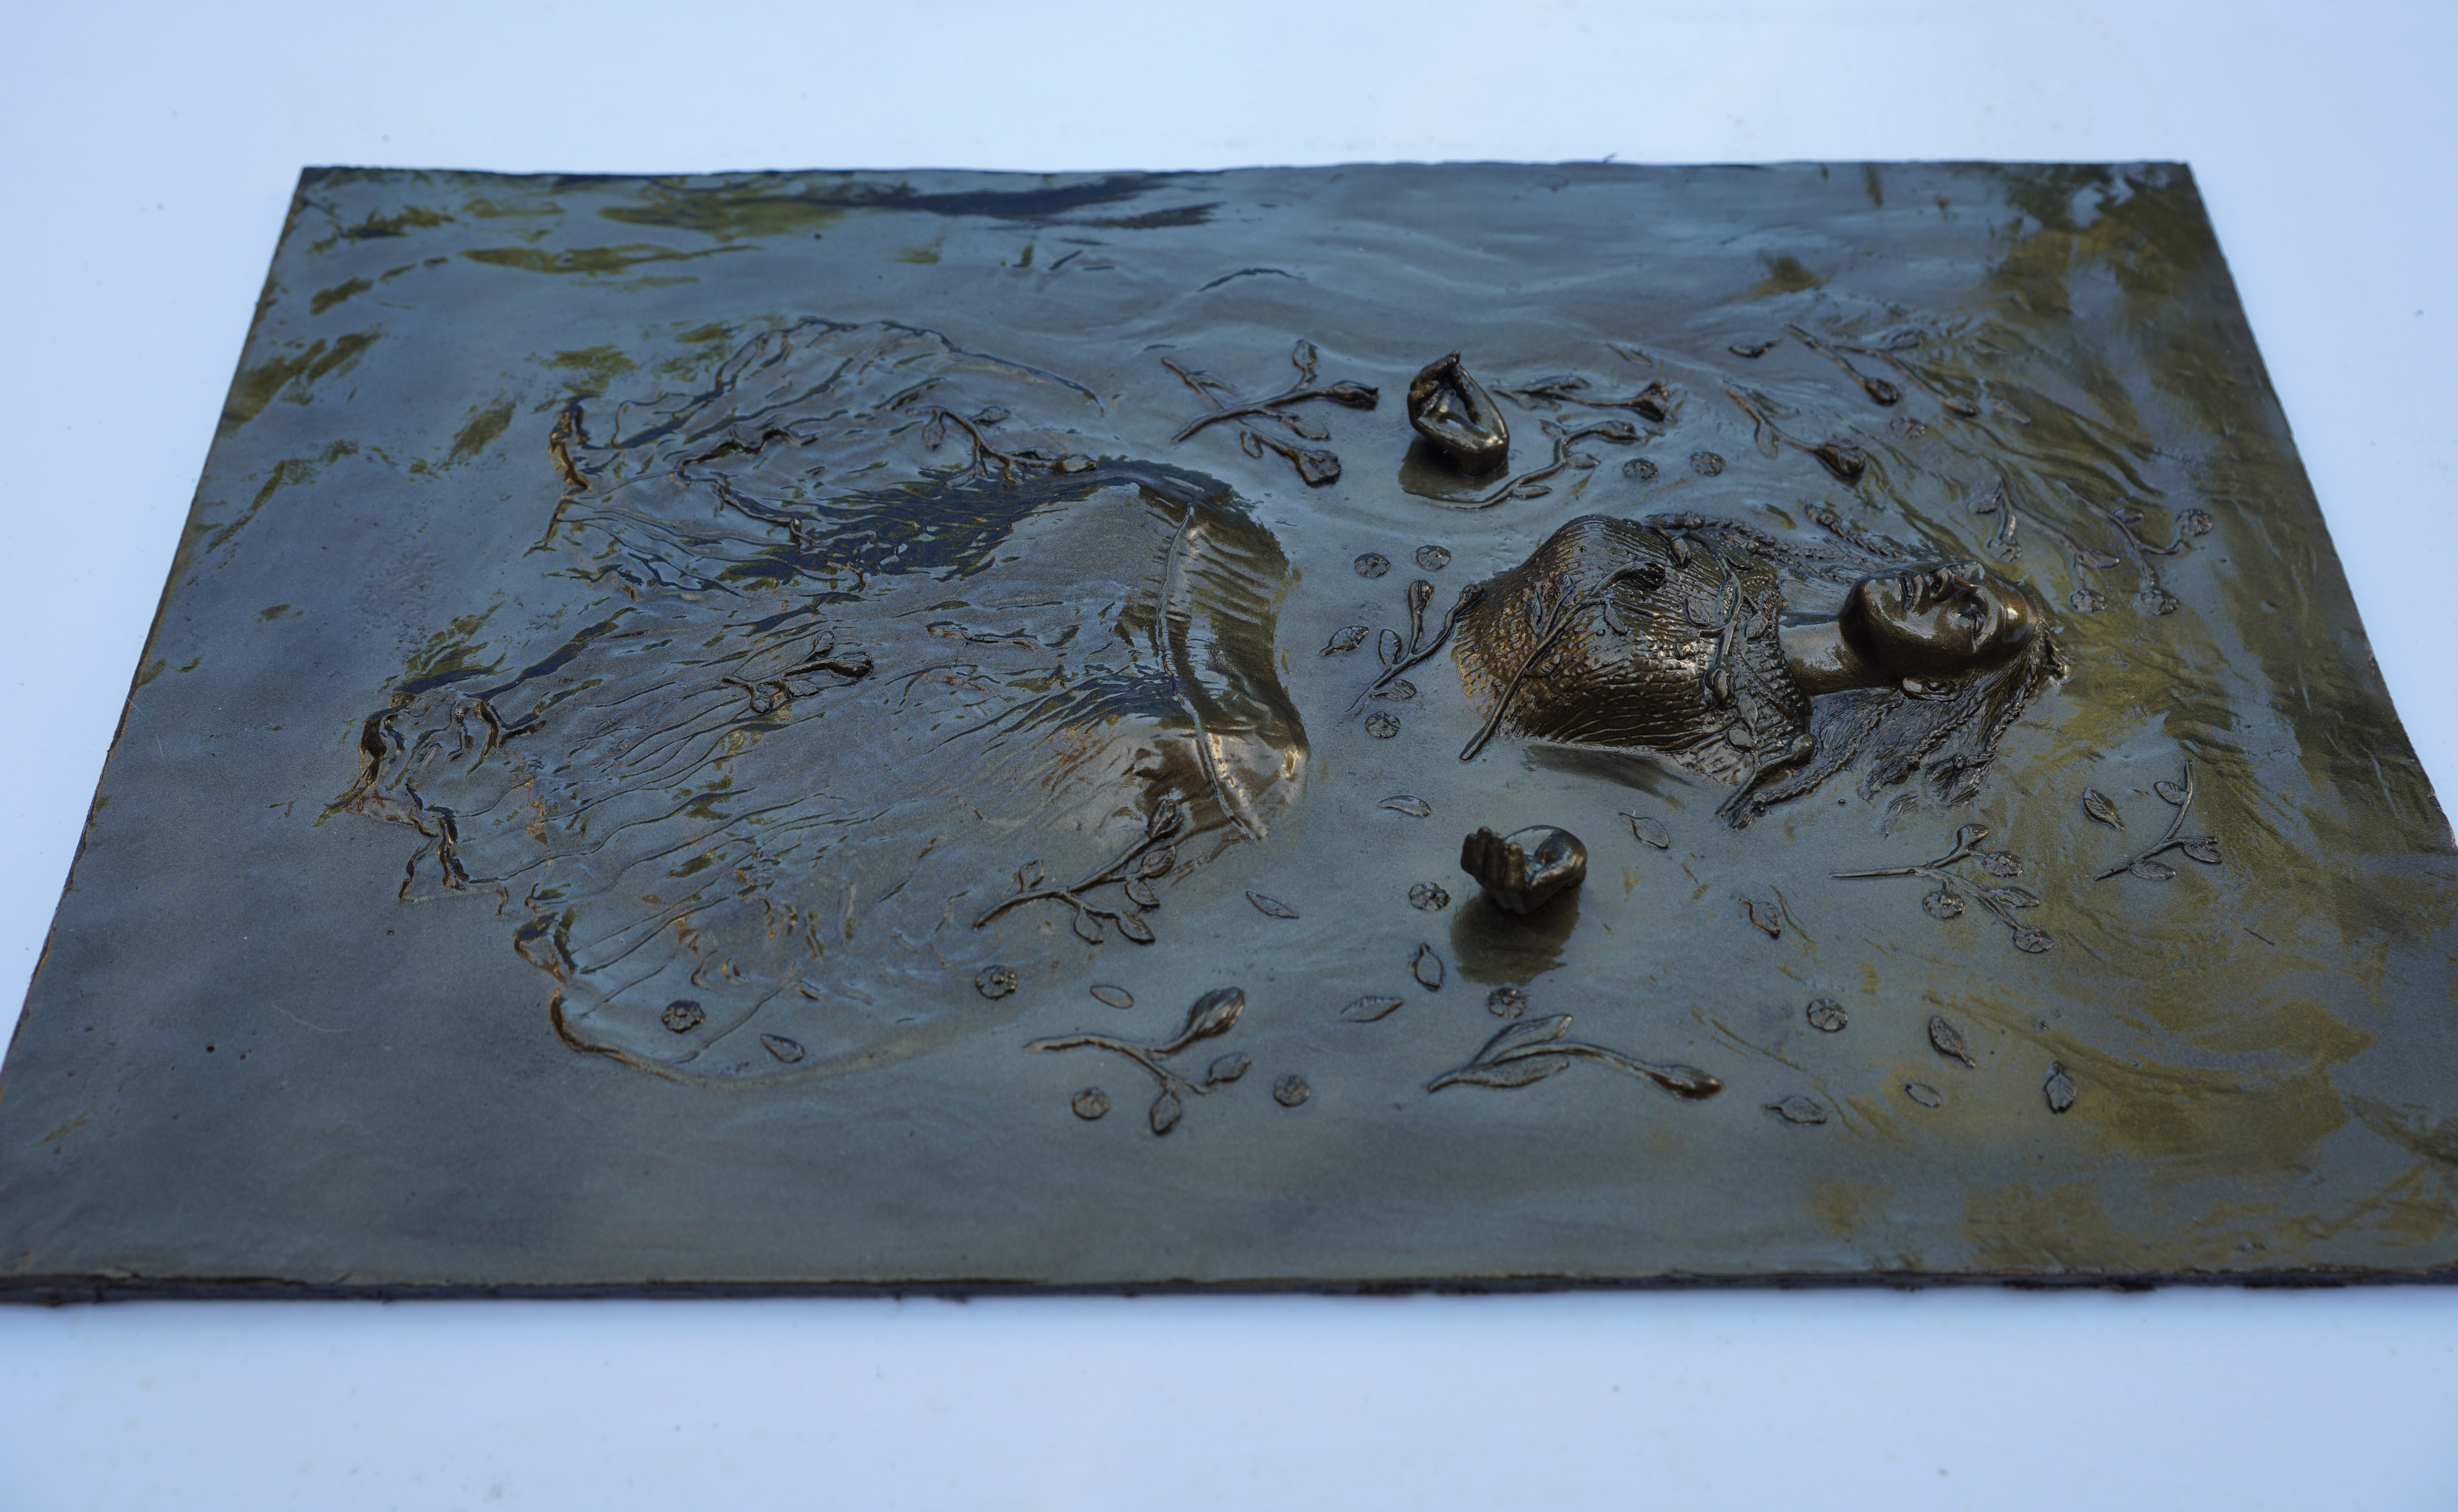 Ophelia base relief sculpture